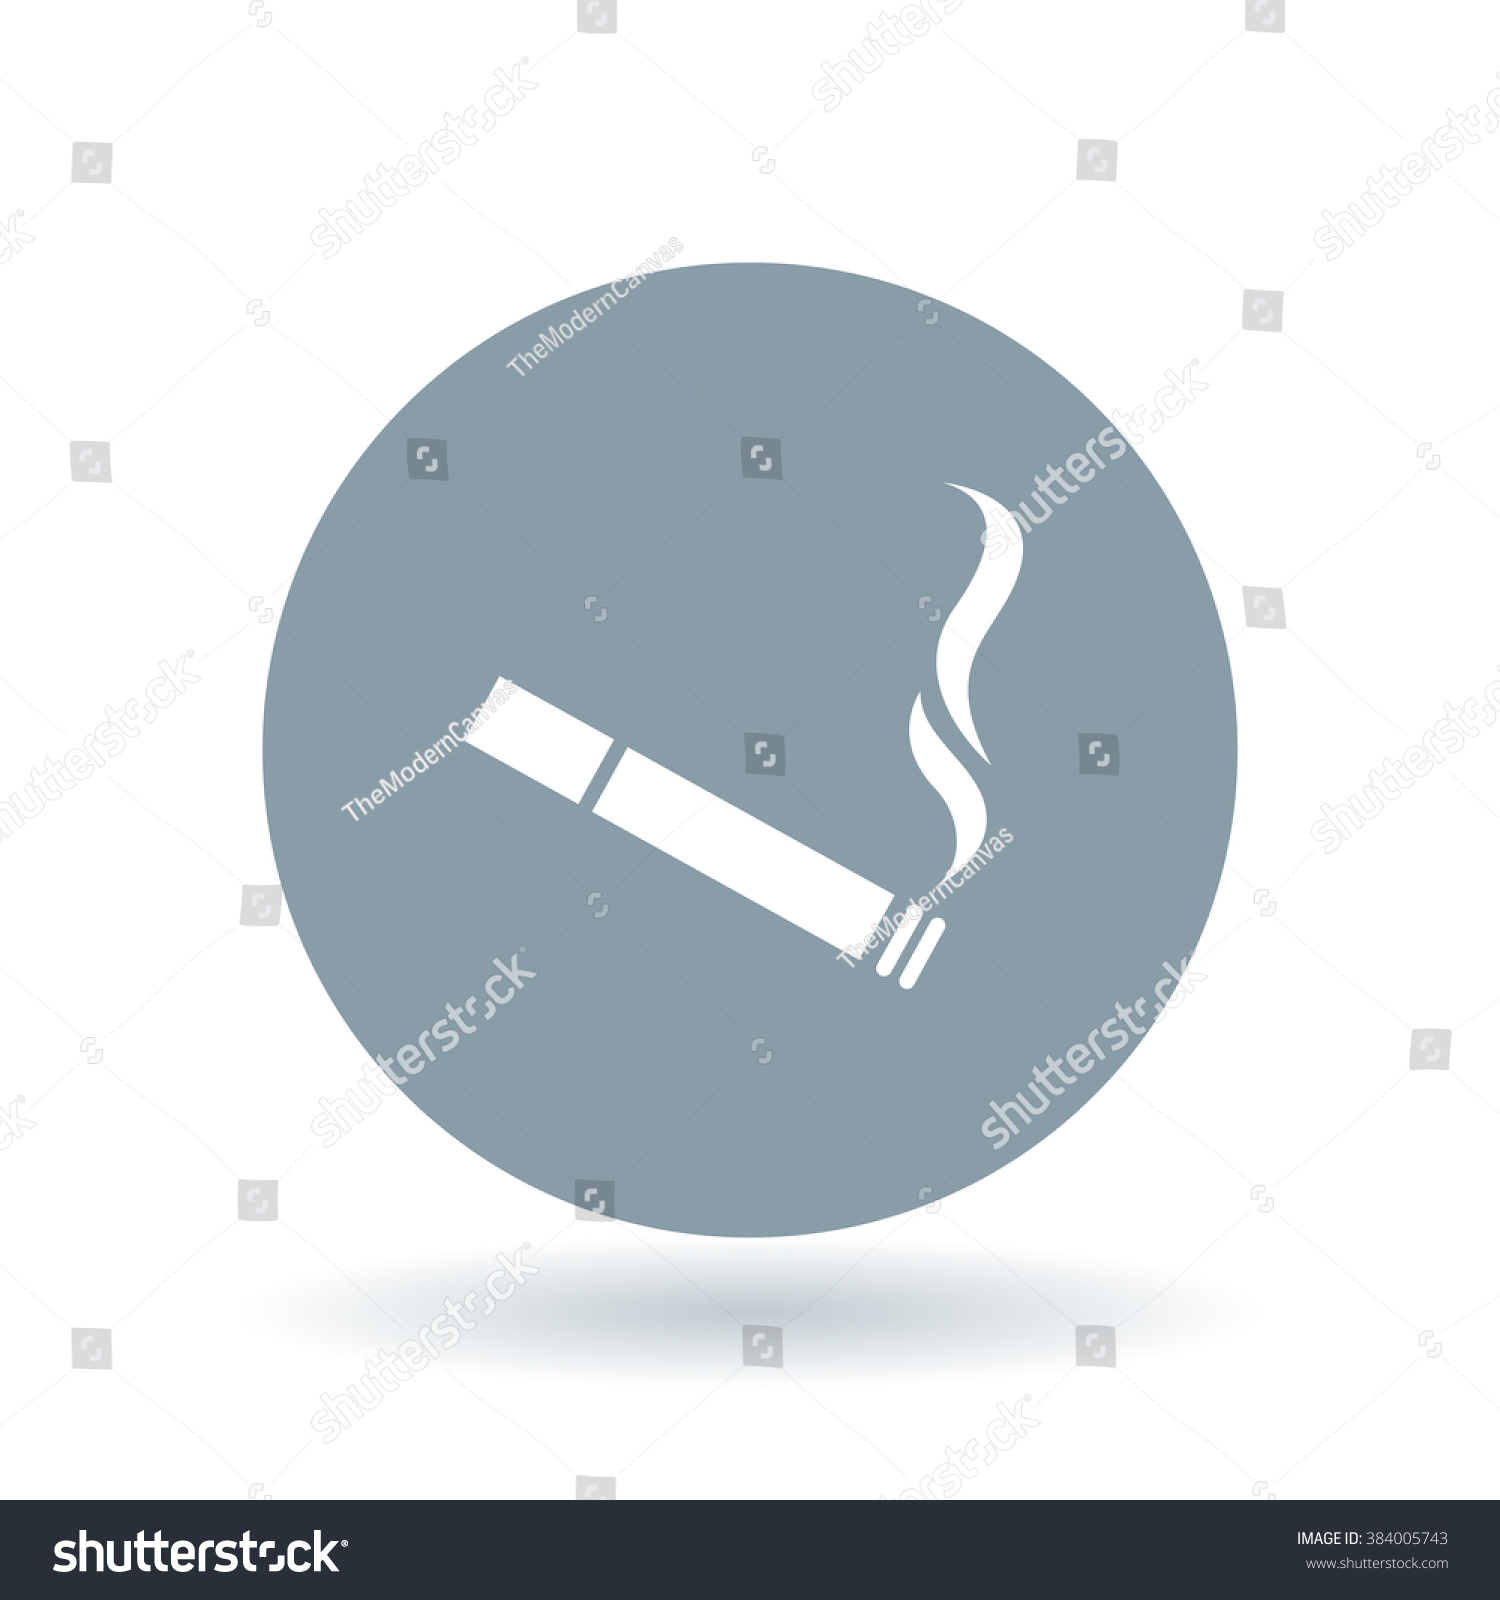 Cigarette icon tobacco sign smoking symbol stock vector 384005743 cigarette icon tobacco sign smoking symbol white icon on cool grey circle background buycottarizona Images